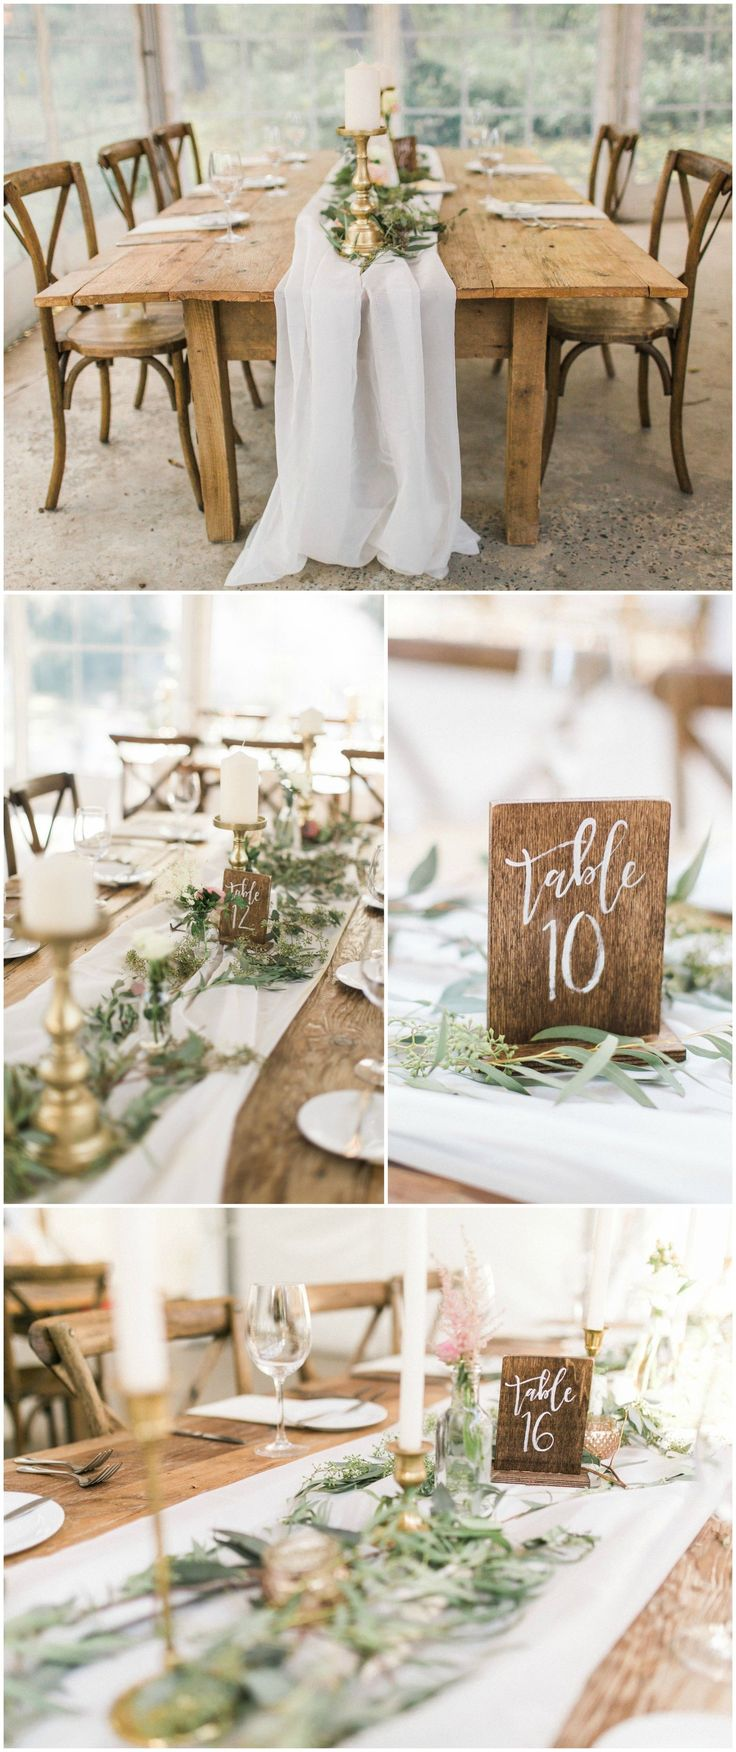 Natural wedding reception, wooden block table numbers, cross-back chairs, long wood tables, white linens, loose leaves, white candles // Ashley Errington Photography